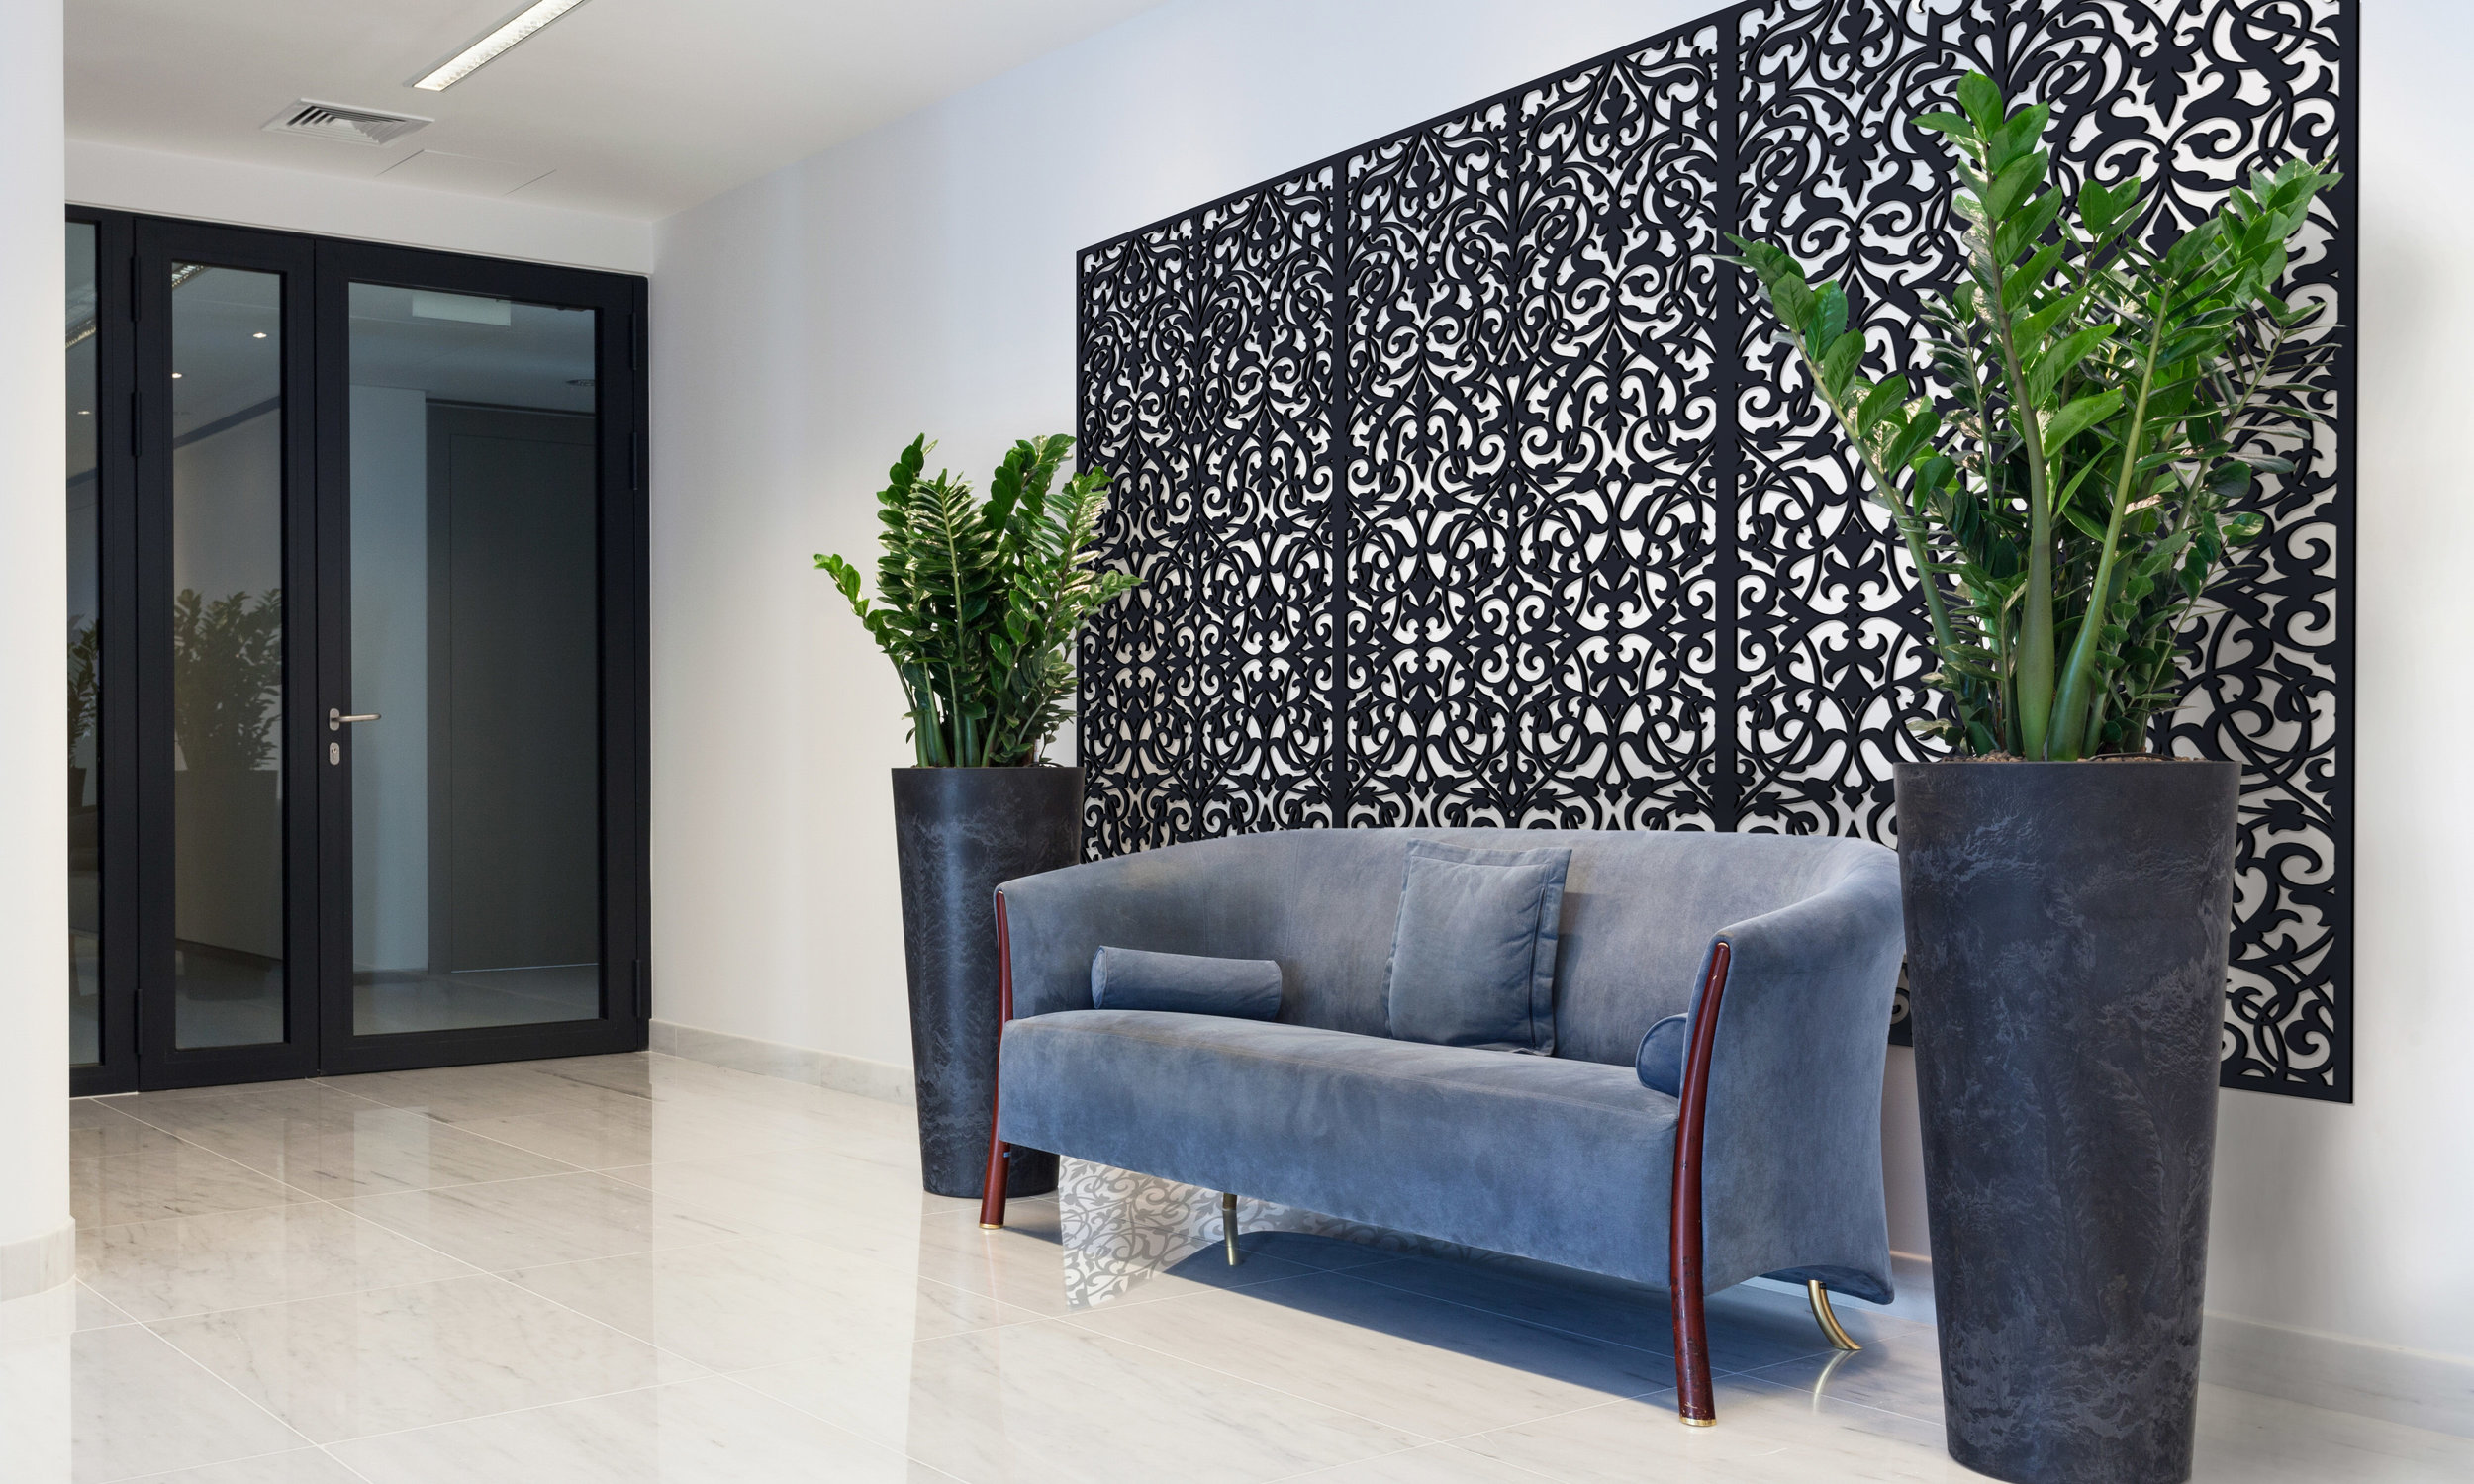 Installation Rendering C   Ornate Damask decorative office wall panel - painted